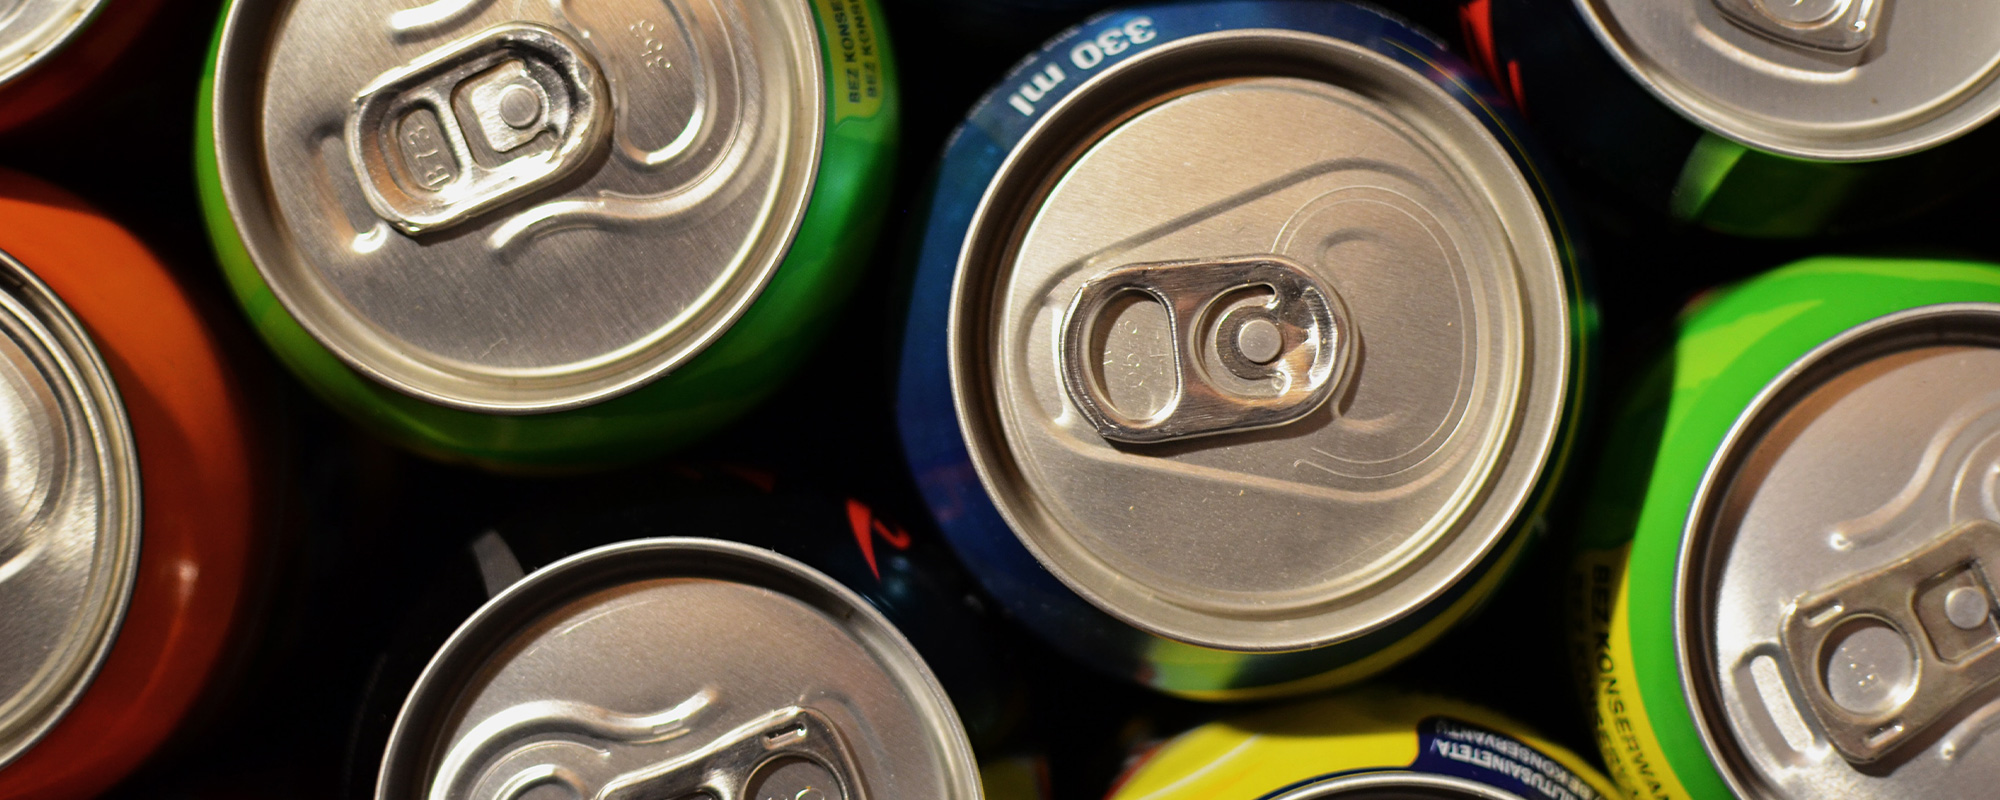 Should You Quit Drinking Diet Soda